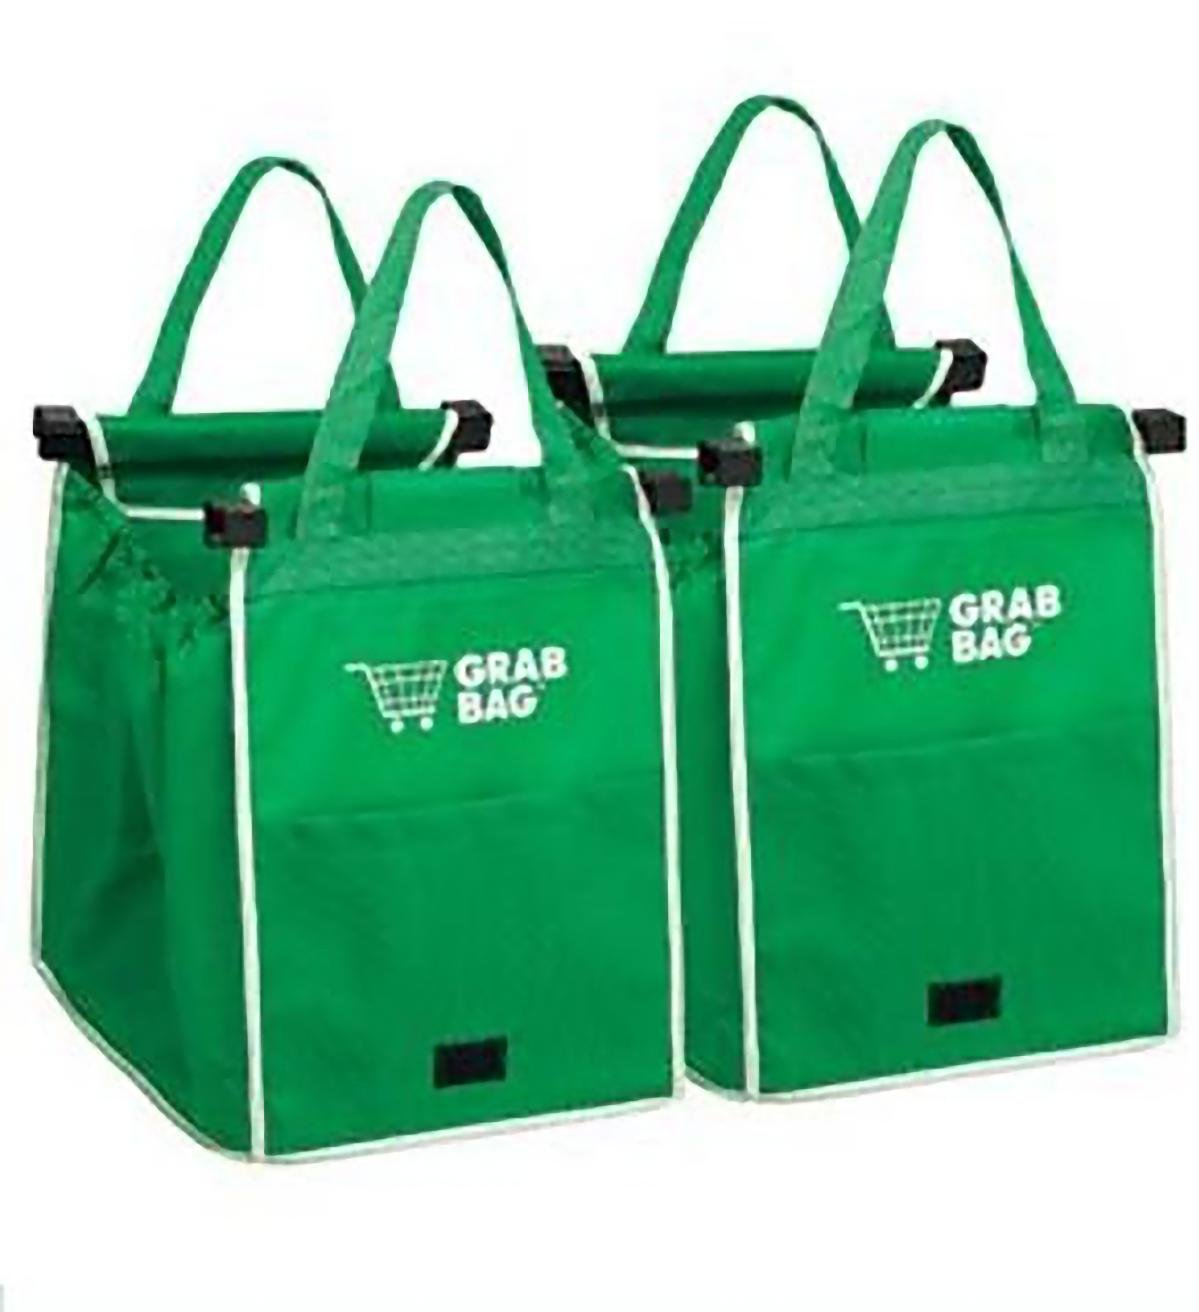 Best Reusable Grocery Shopping Bags | Grocery Store Near Me